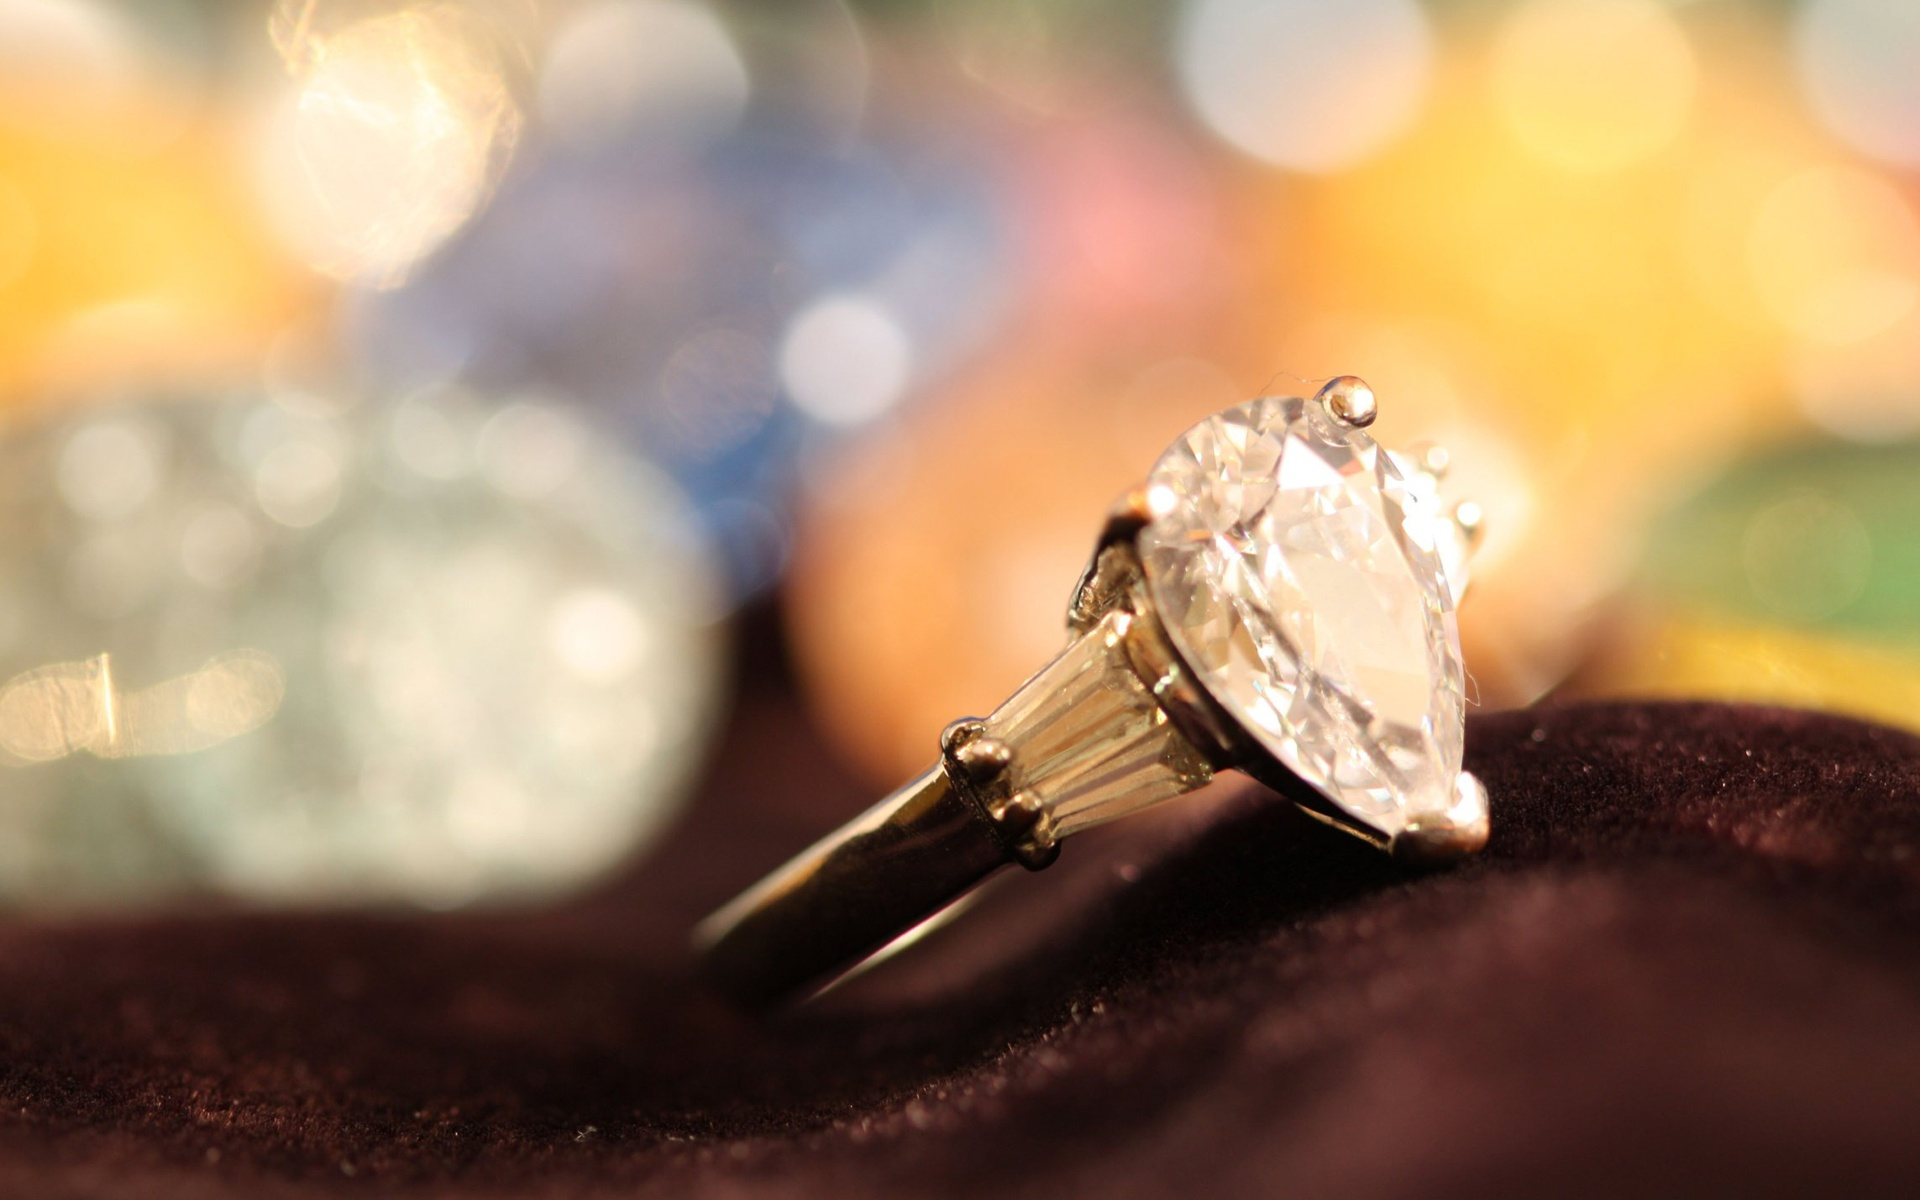 diamond engagement ring 1920x1200 wallpaper download page 358582 1920x1200